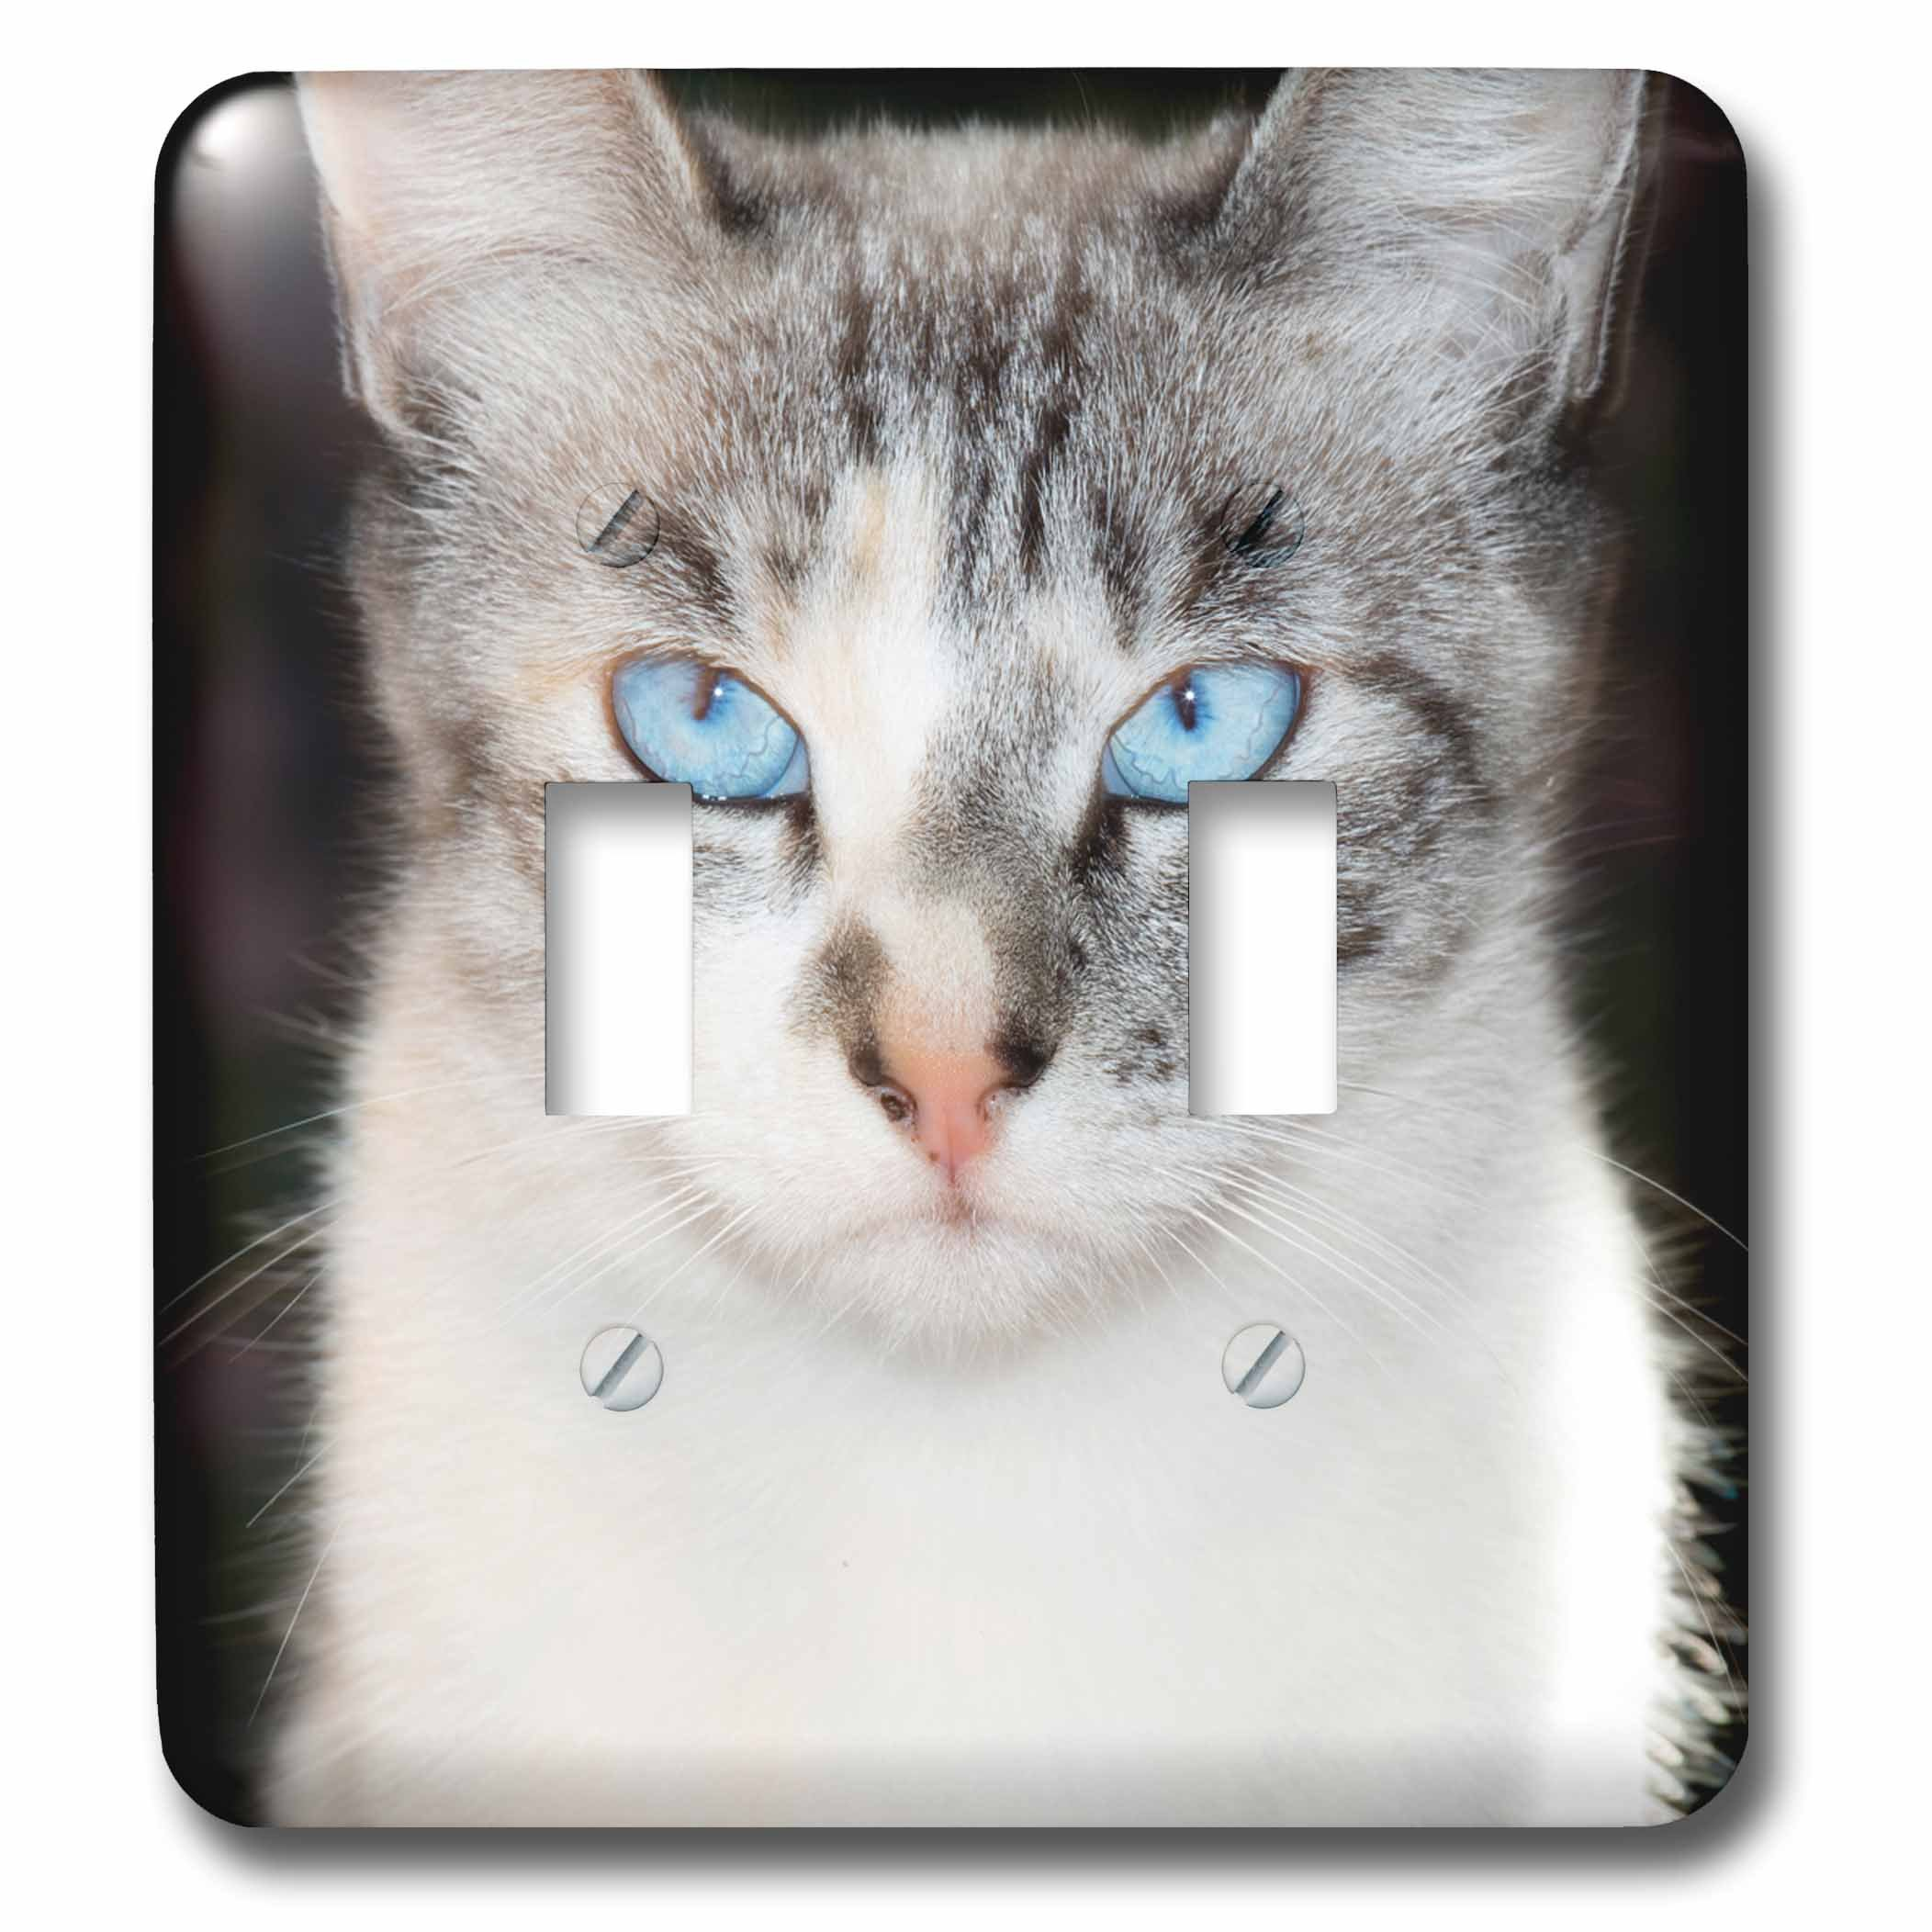 3dRose Danita Delimont - Cats - USA, California. Lynx point Siamese cat portrait. - Light Switch Covers - double toggle switch (lsp_278512_2)